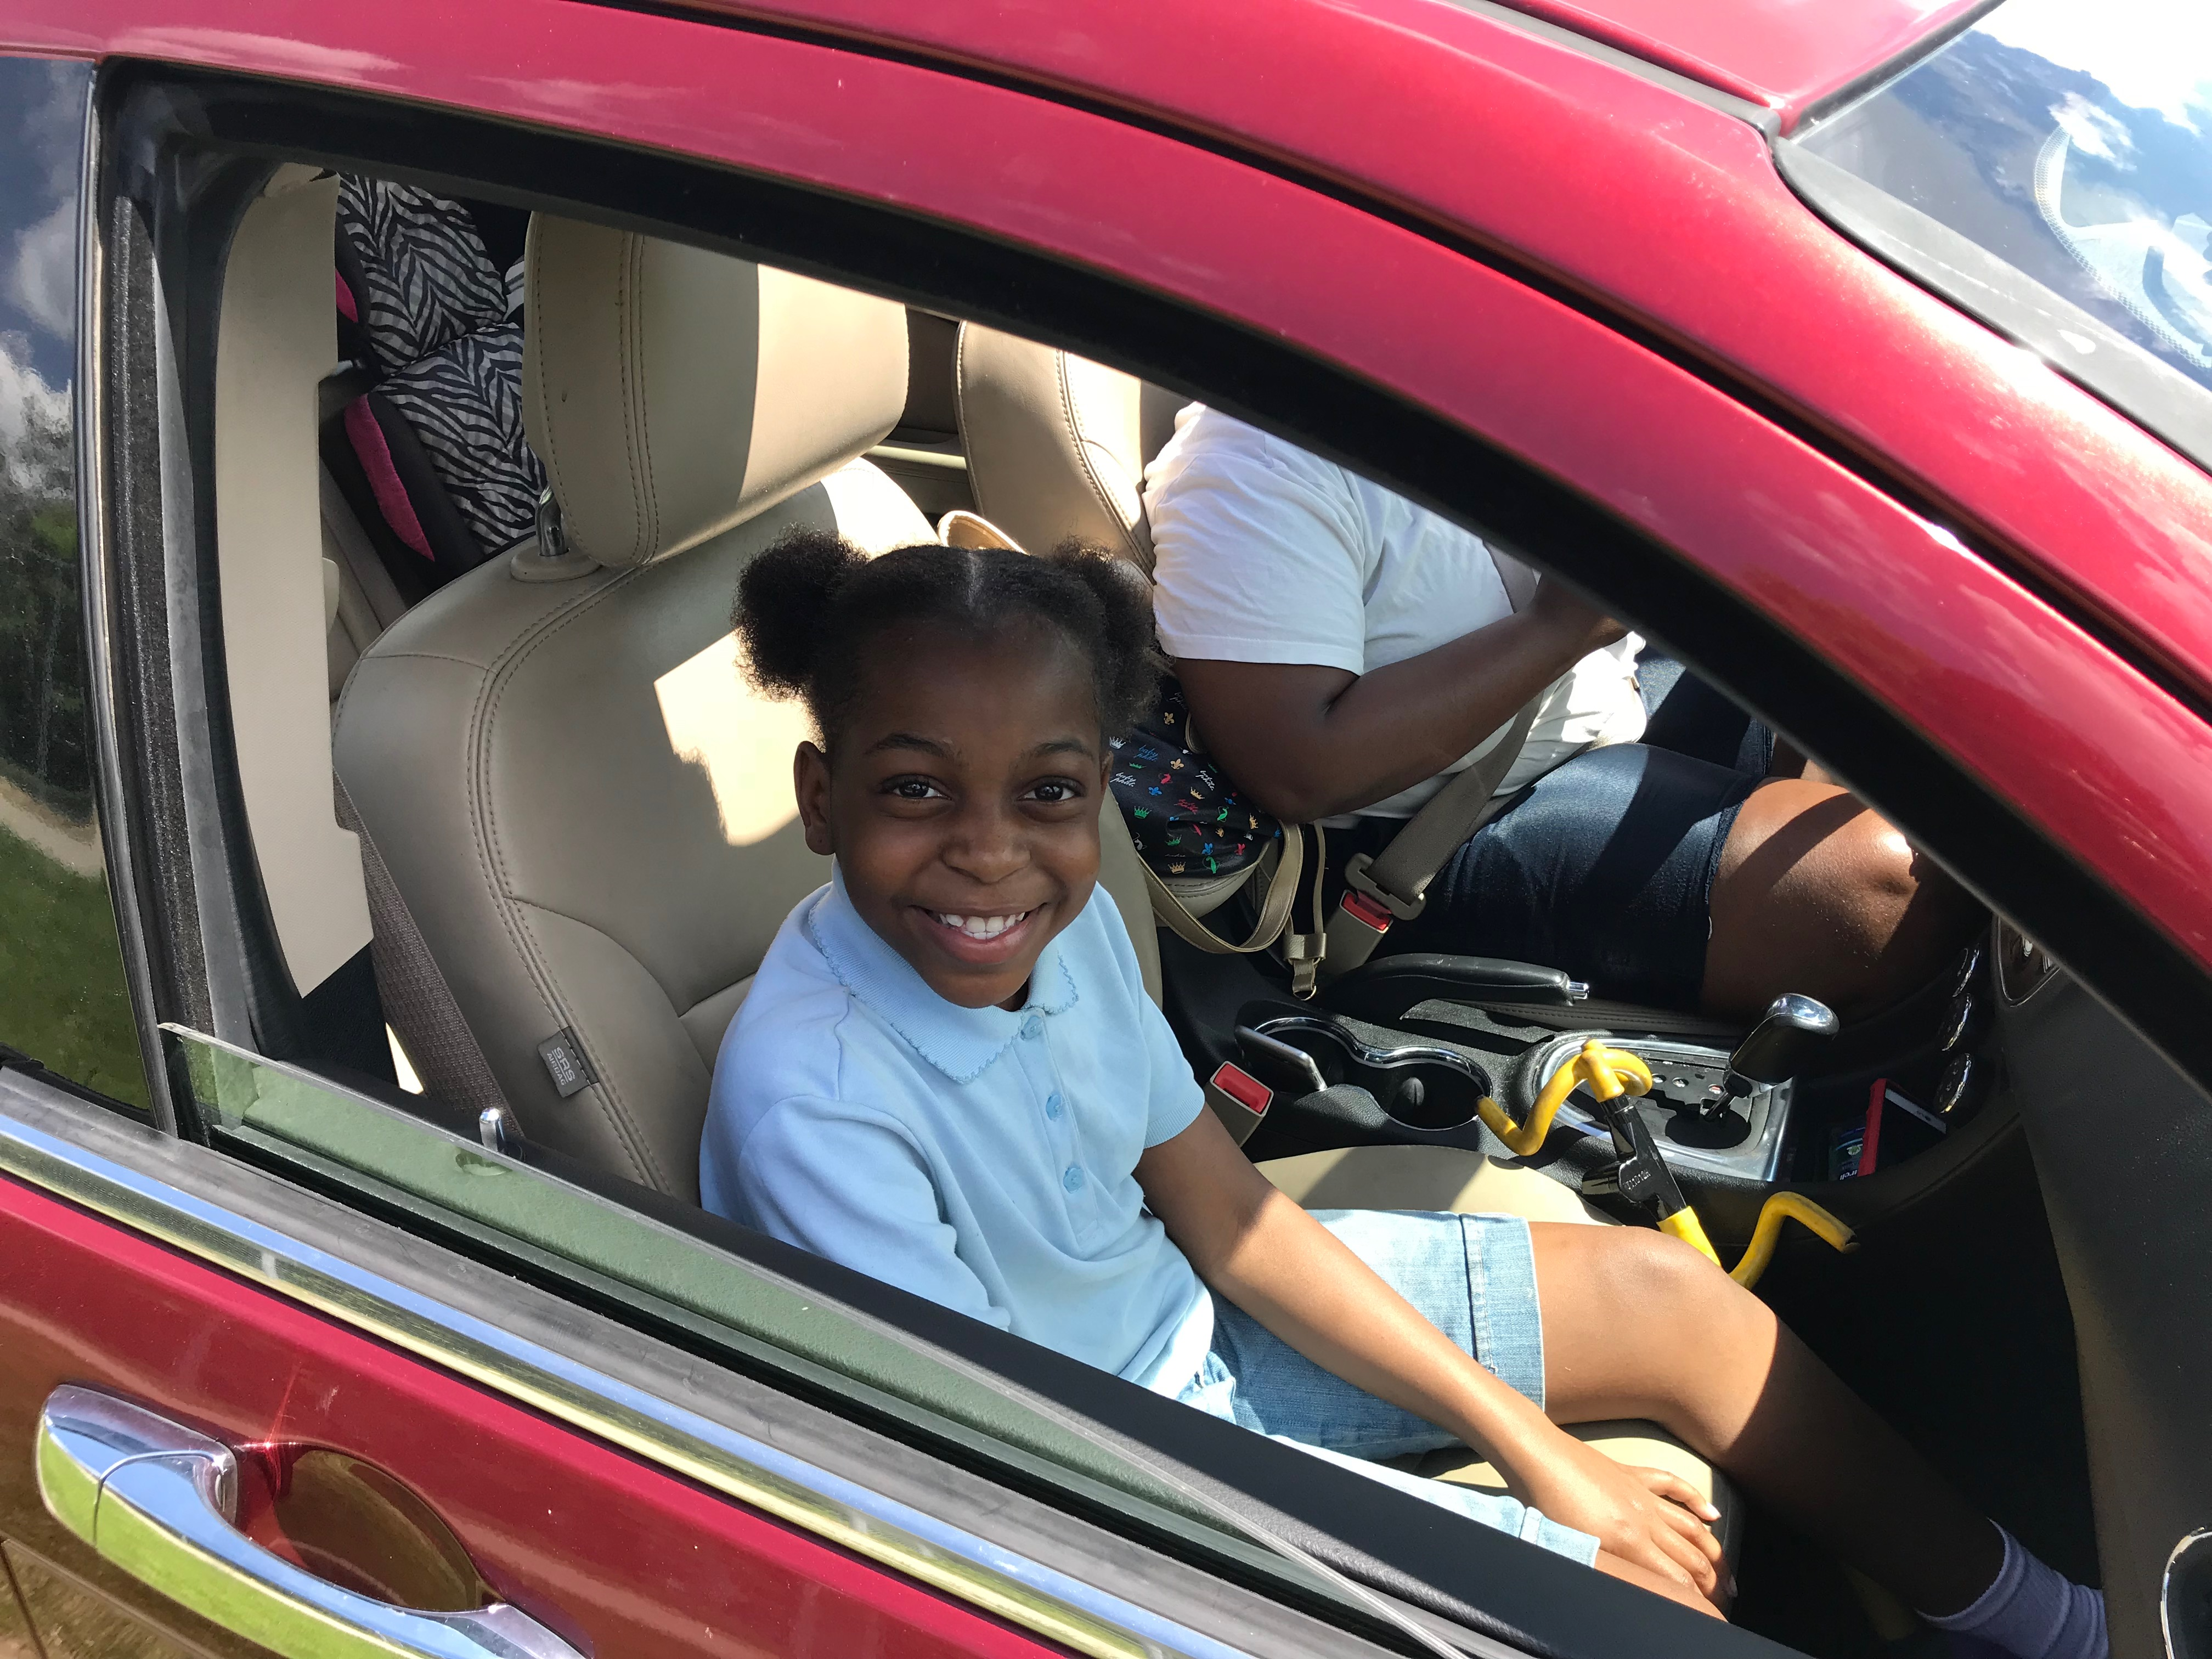 After her 11:40 a.m. dismissal Thursday, Lataliah Madden, a third grader at Davison Elementary-Middle School, said this week's early school closures due to extreme heat cut her education short